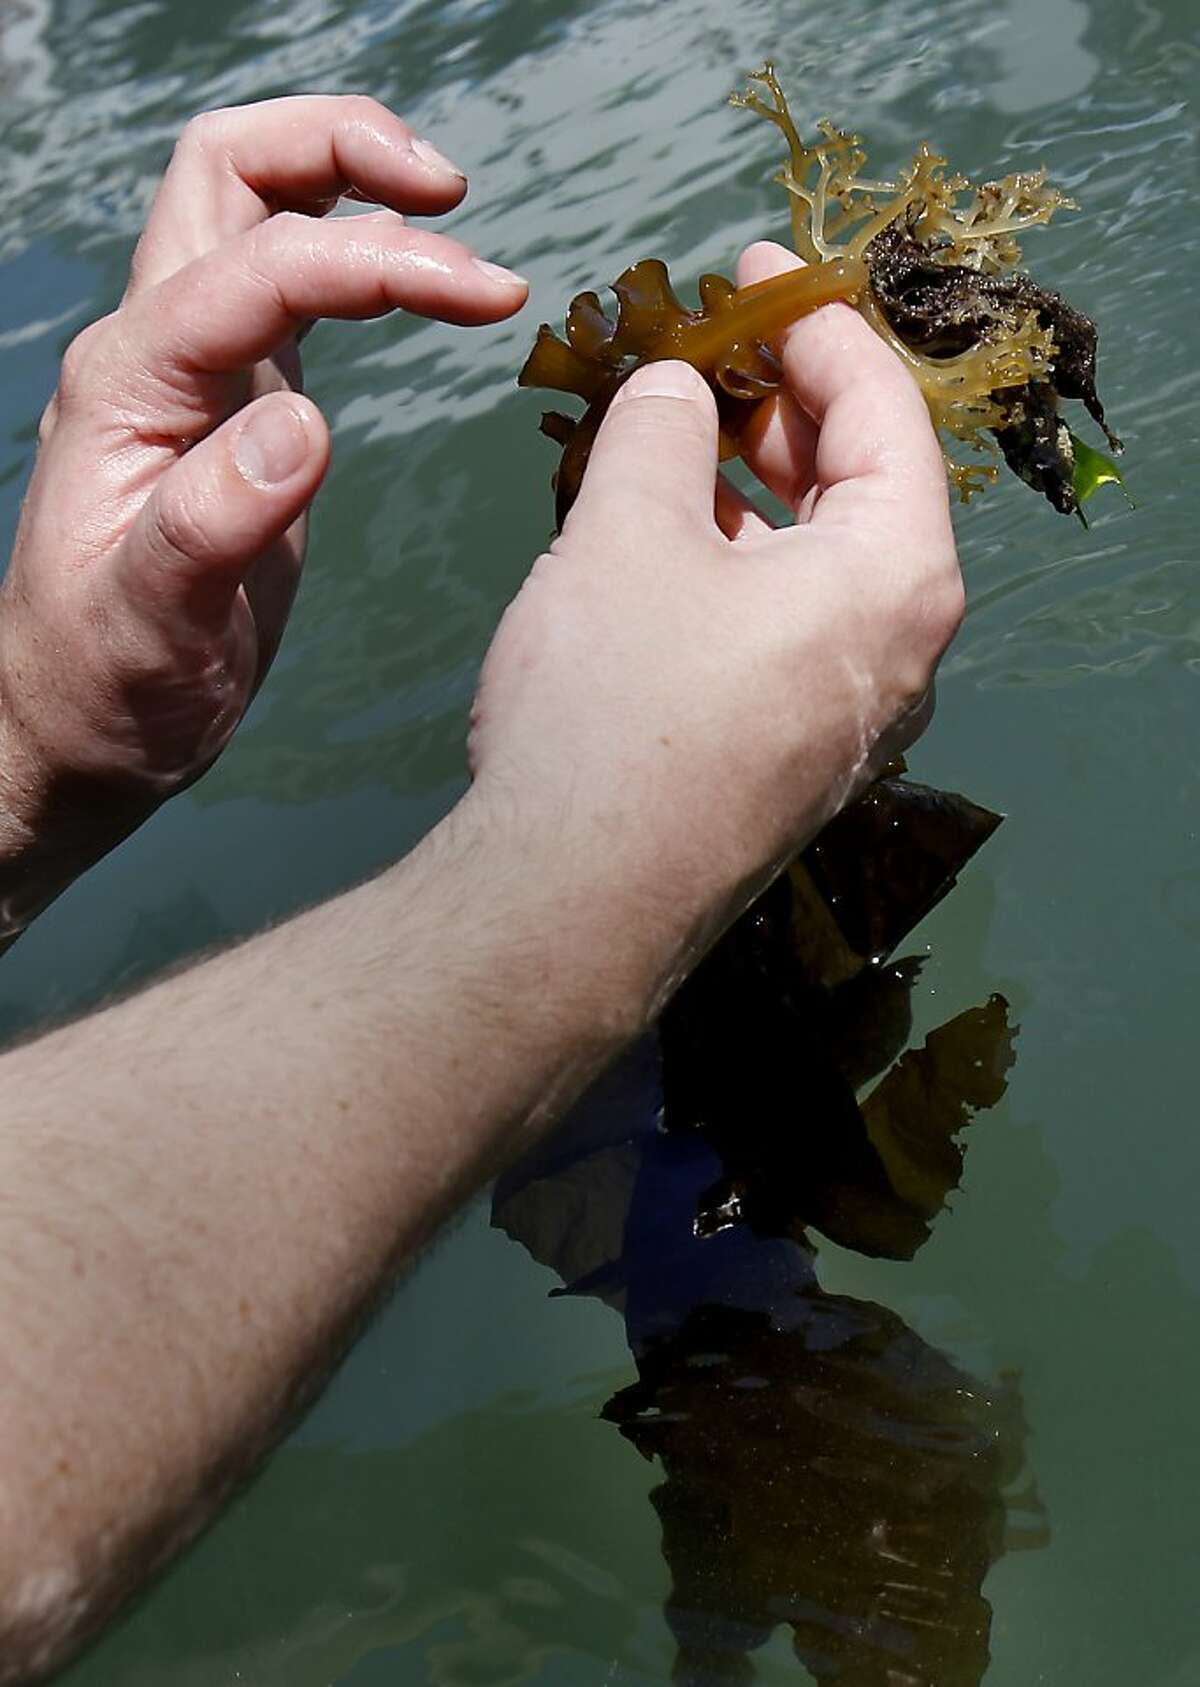 Biologist Kevin McEligot of Aquarium of the Bay handles some of the Undaria pinnatifida found in the docks. A highly invasive brown kelp called Undaria pinnatifida is invading the San Francisco bay waters prompting regular searches to eliminate it, particularly around the Hyde Street pier in San Francisco, Calif.